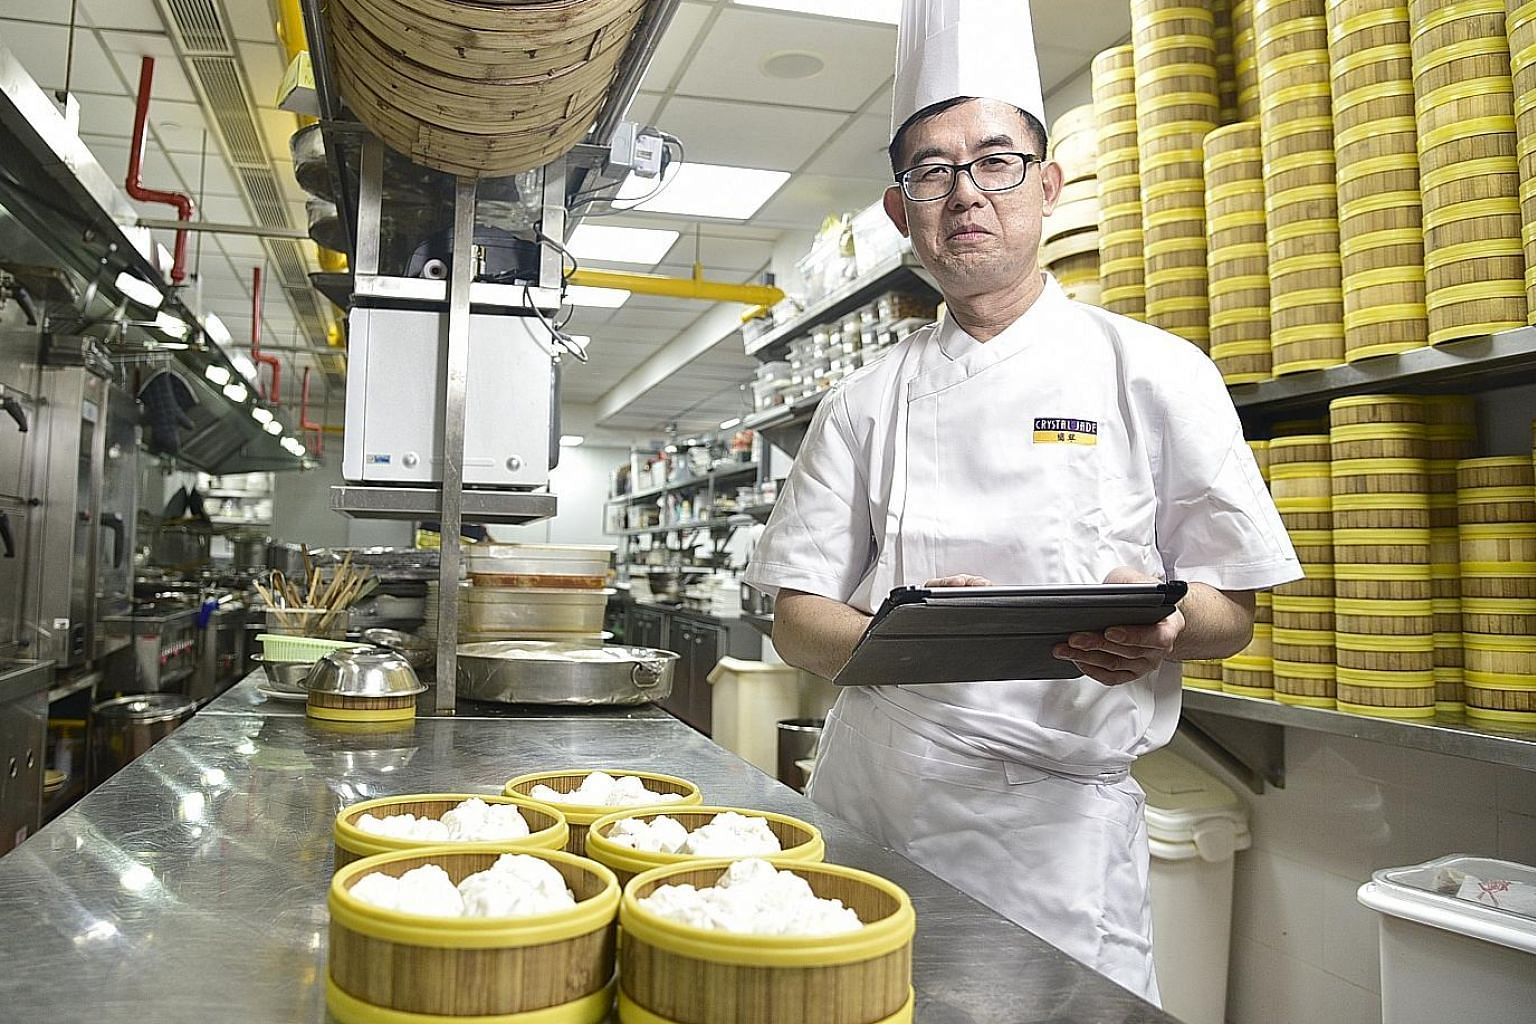 Besides machines that help make pastries, chef Shum Chun Yi also appreciates new electronic processes such as using a tablet computer to order inventory items directly from suppliers. ST PHOTO: DESMOND WEE